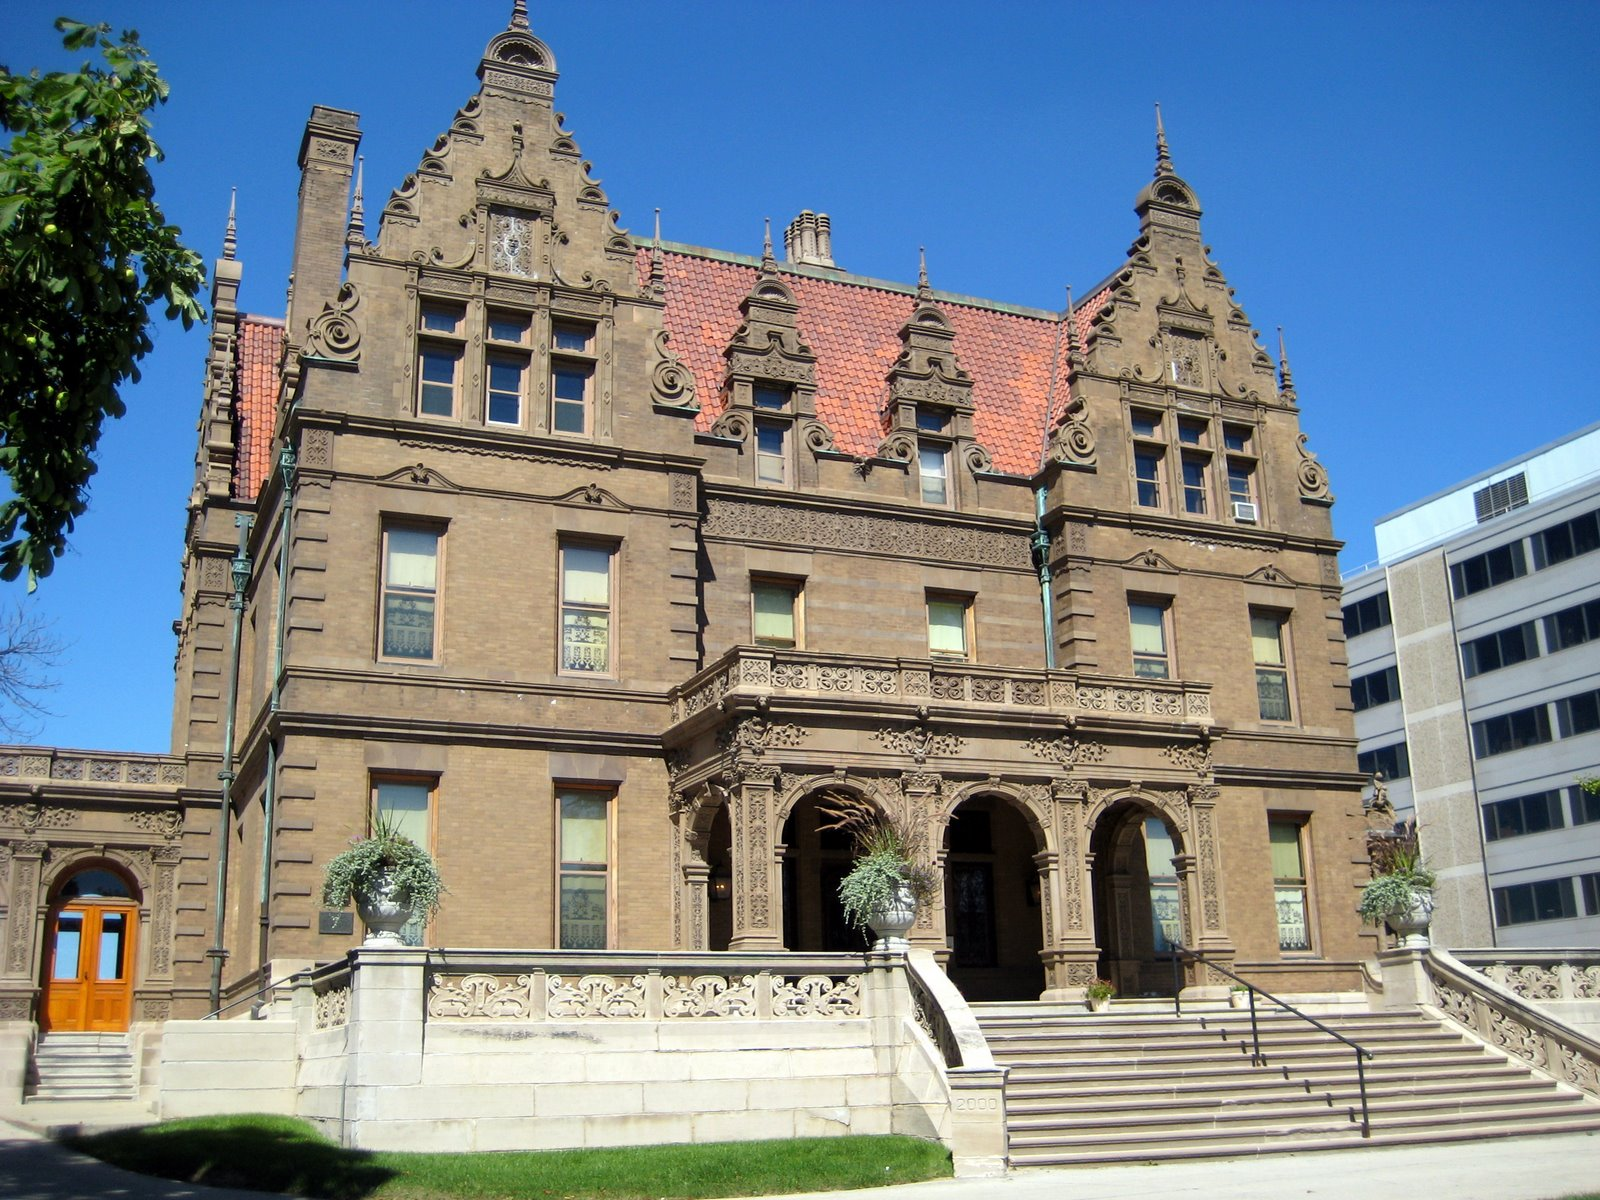 Pabst Mansion Open House: In Celebration of their 125th Anniversary